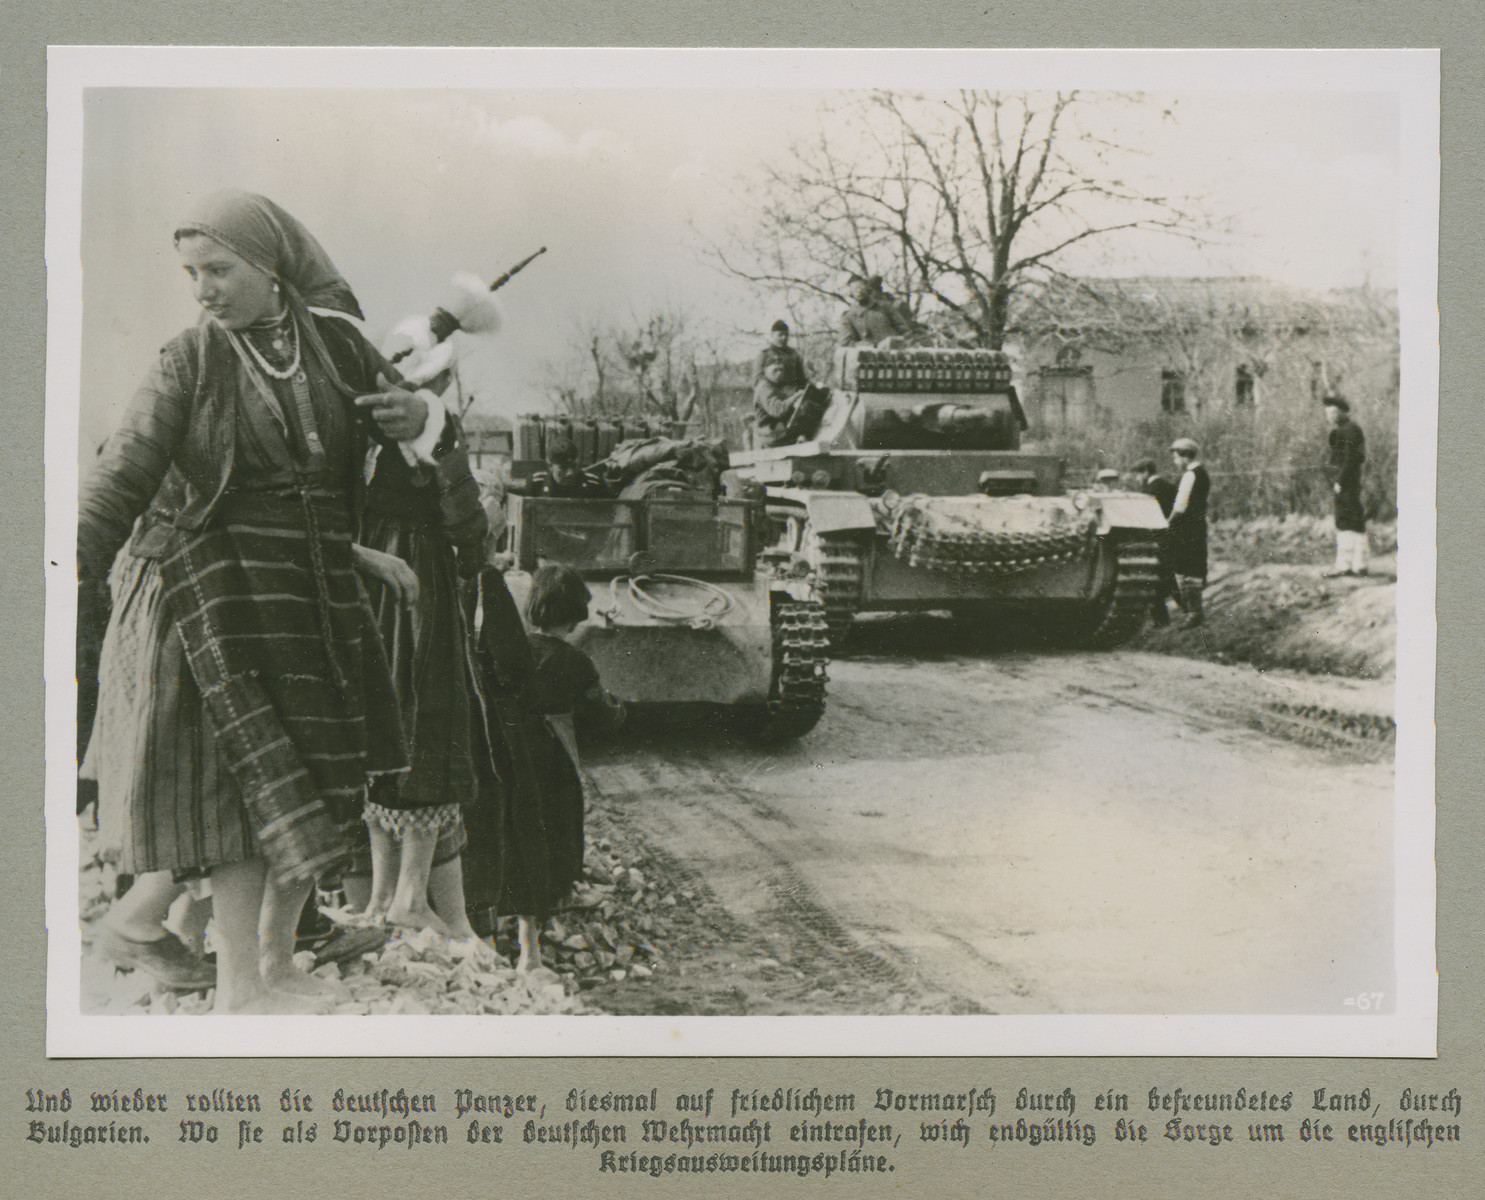 German tanks roll down on a dirt road. while men, women, and children stand offside.    Original caption reads: The German panzers roll by again, this time on a peaceful advance through an allied country, Bulgaria. In Bulgaria they arrived as outposts for the German Wehrmacht, evading fear of  English plans to escalate the war,